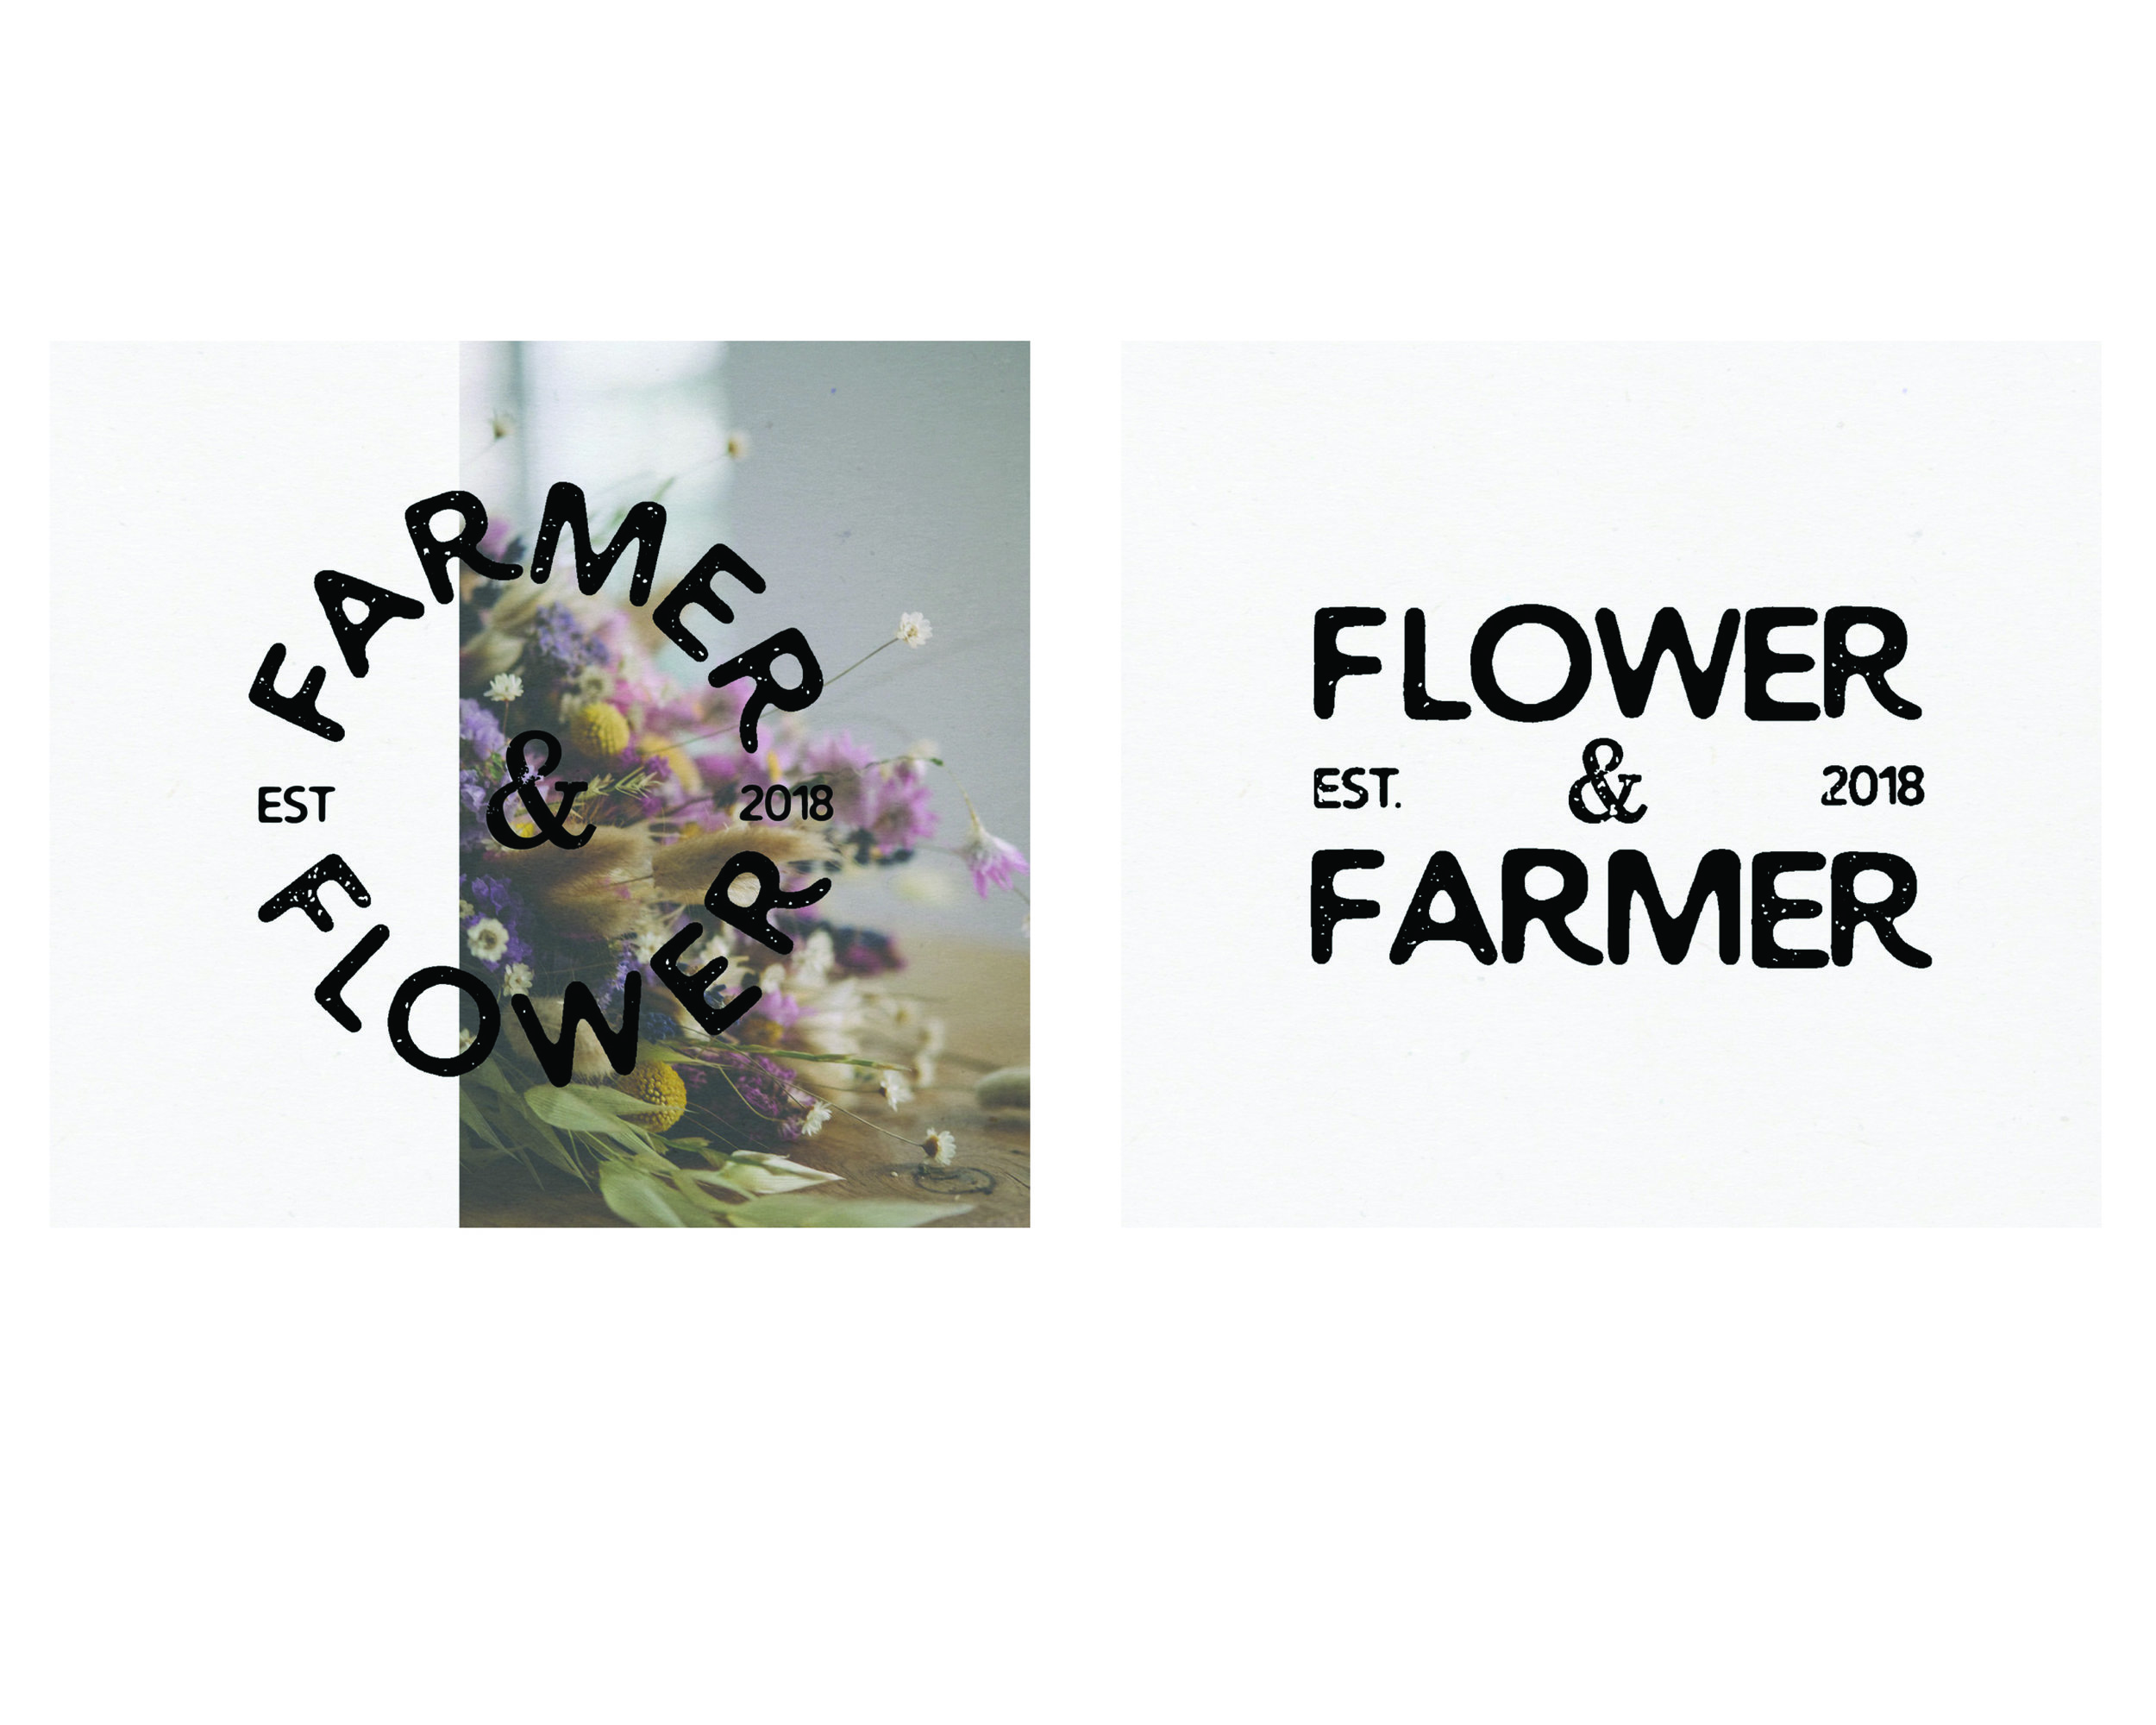 logo concept design for a pick-it-yourself flower farm set in the british countryside inspired by old produce stamps.  the branding has a rustic, handcrafted feel with romantic imperfections.